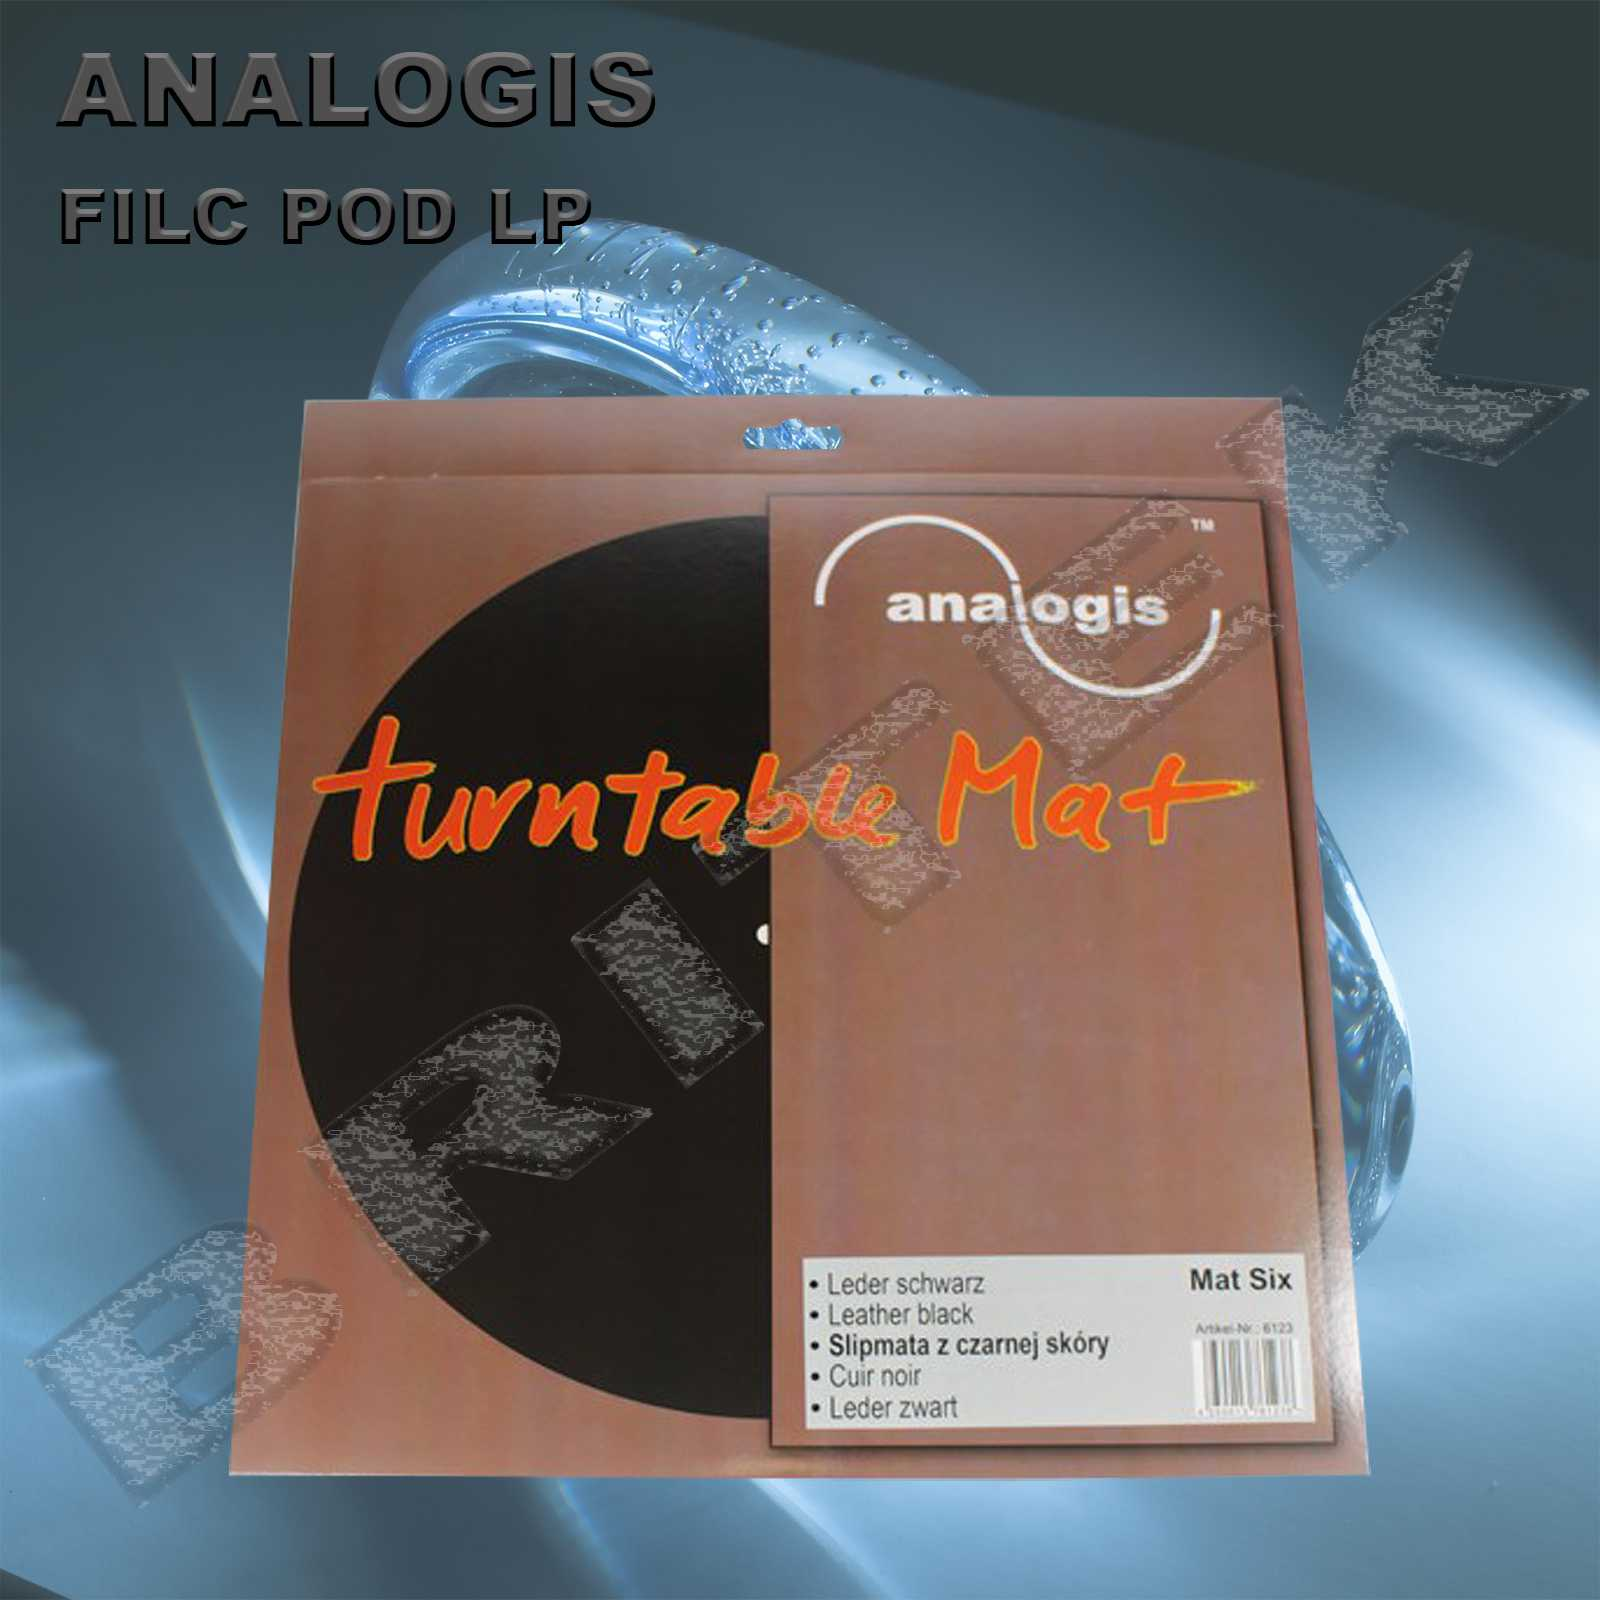 ANALOGIS FILC POD LP